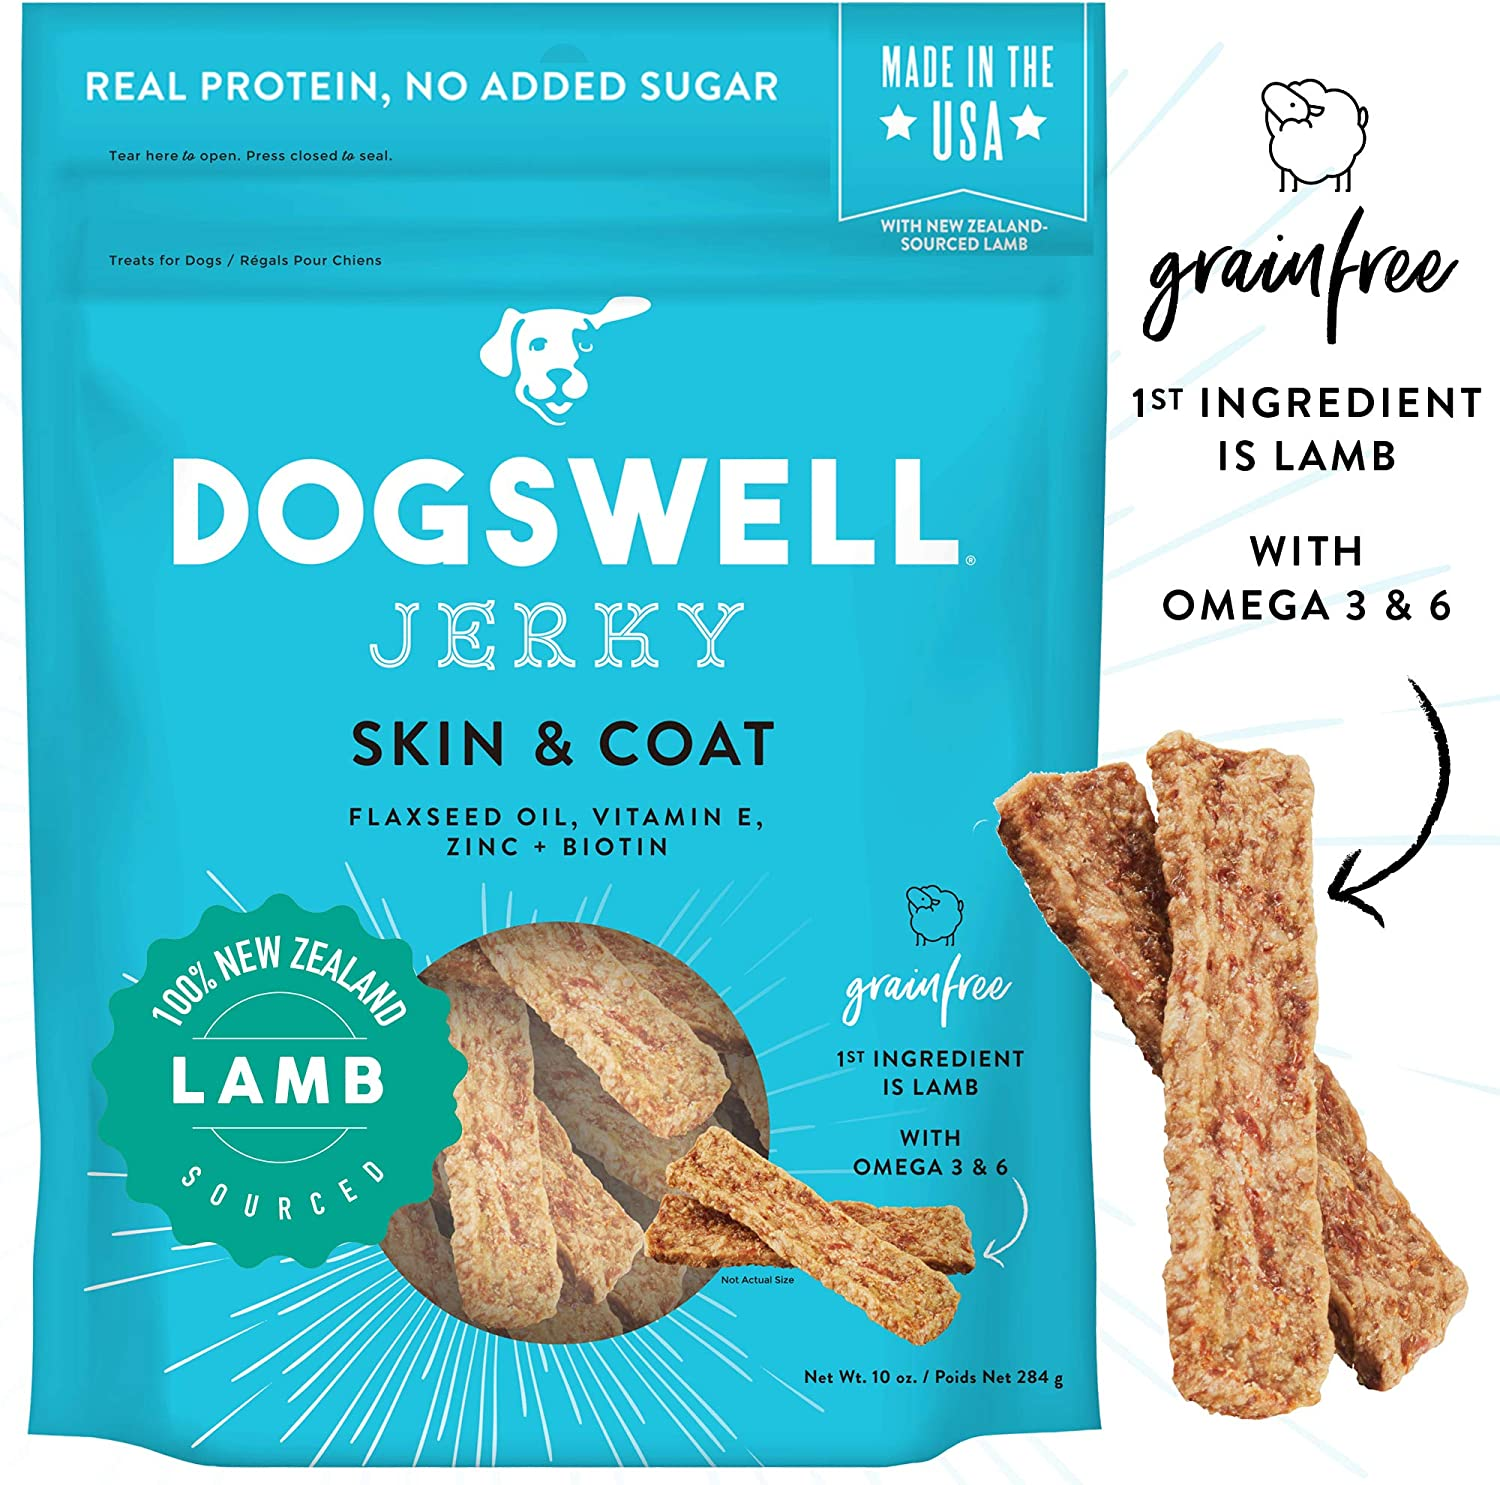 Dogswell 100% Meat Jerky Dog Treats, Made in the USA, with Biotin & Zinc for Healthy Skin & Coat